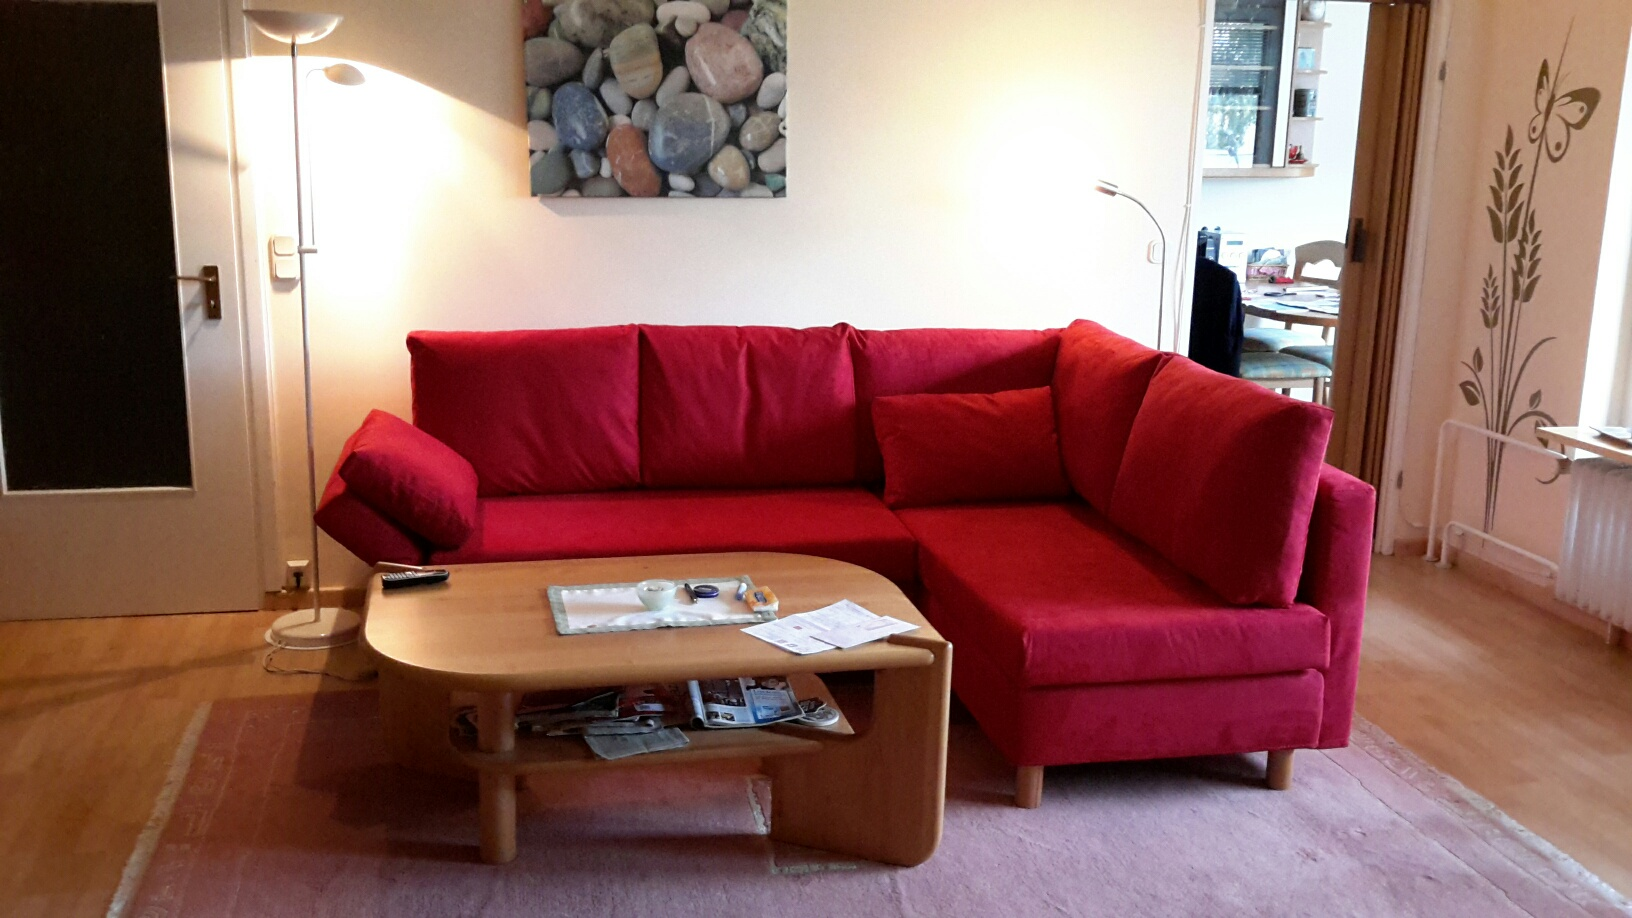 Rotes Sofa Welche Wandfarbe Rote Couch Wohnzimmer Passende Wandfarbe Vitaplaza Info